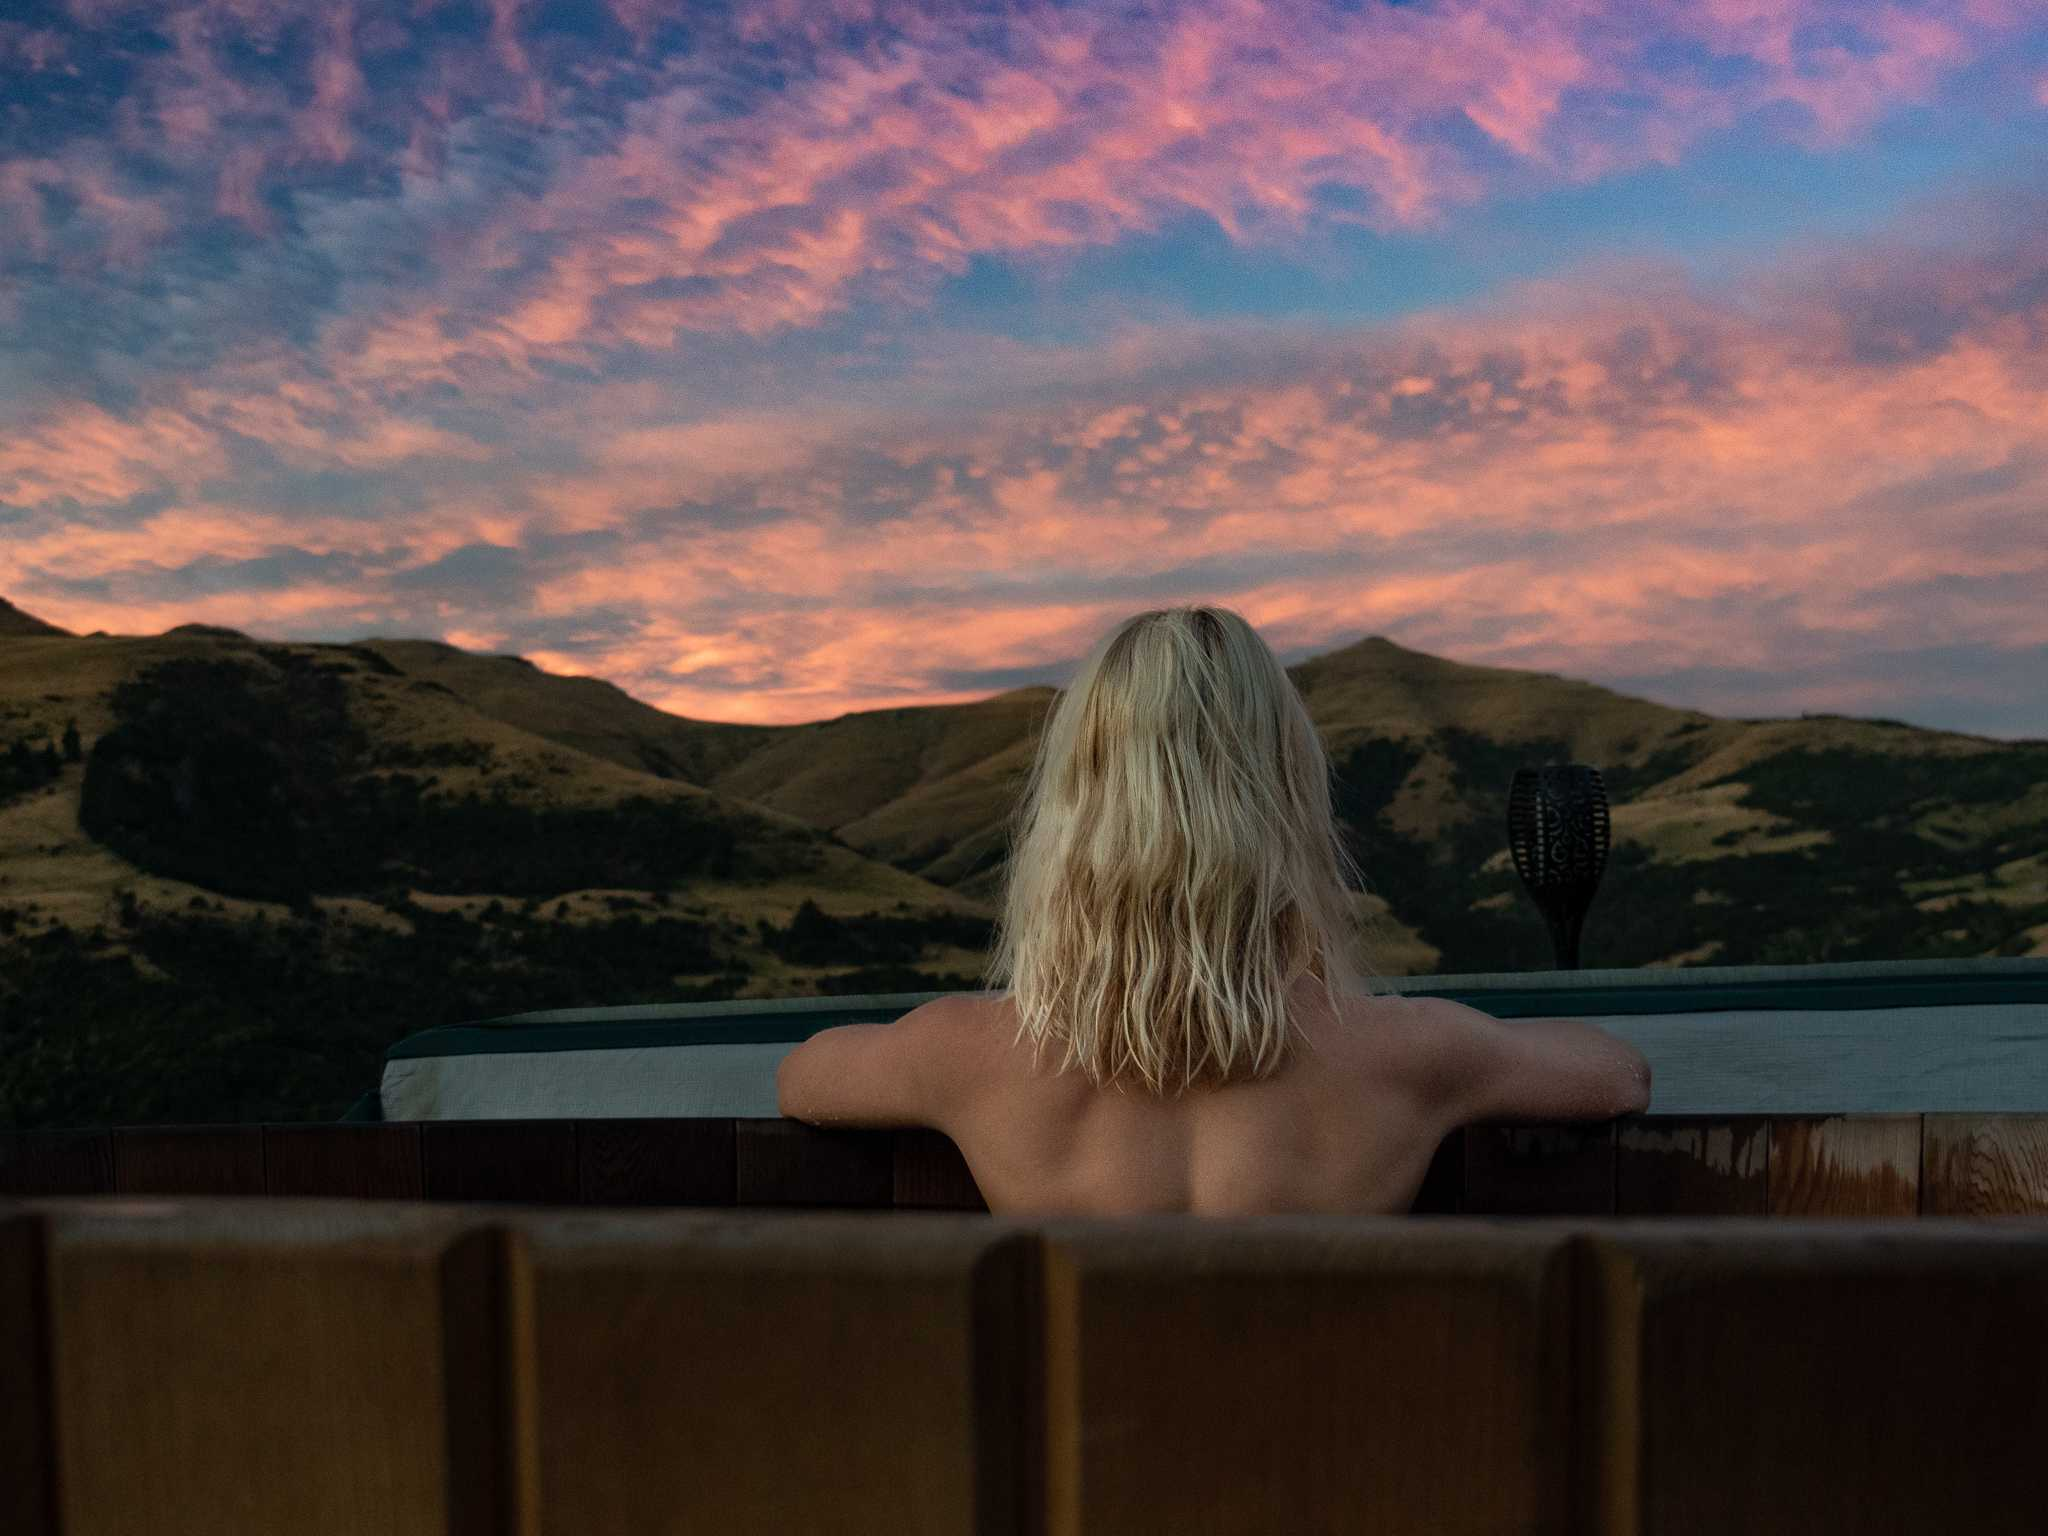 girls sits in hot tub with cotton candy skies